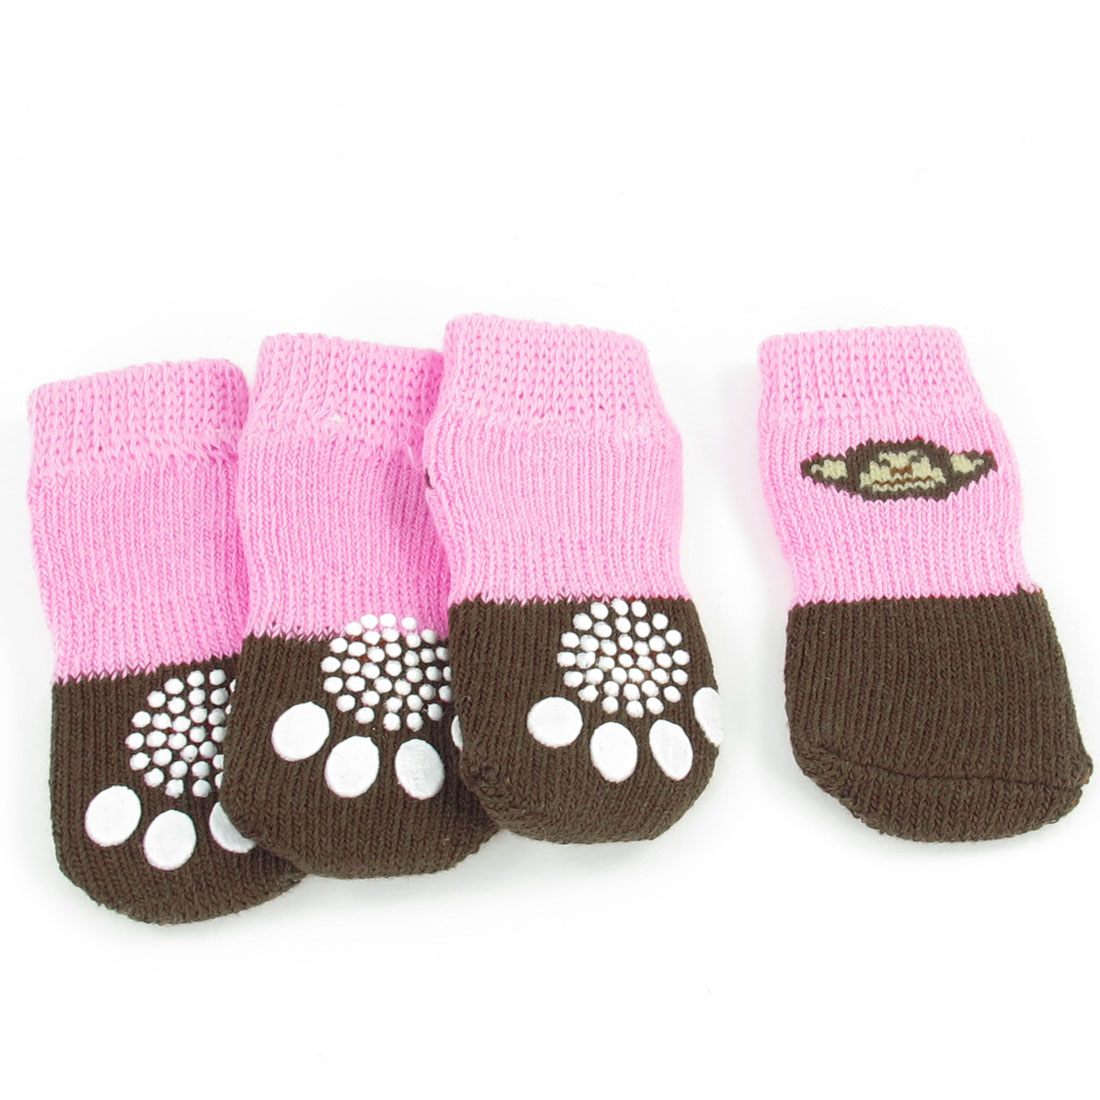 2 Pairs Size M Paw Print Antislip Bottom Pet Dog Doggie Puppy Socks Brown Pink